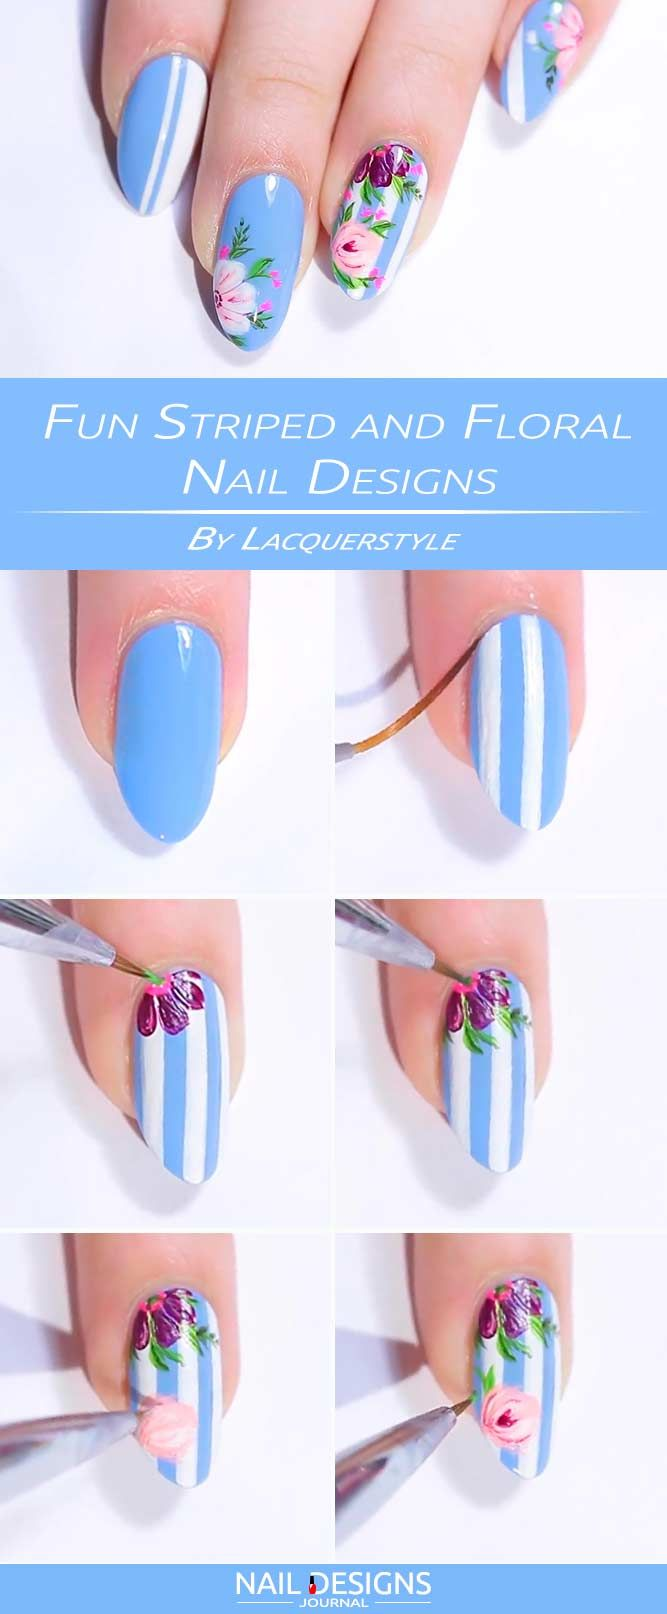 Fun Striped and Floral Nail Designs